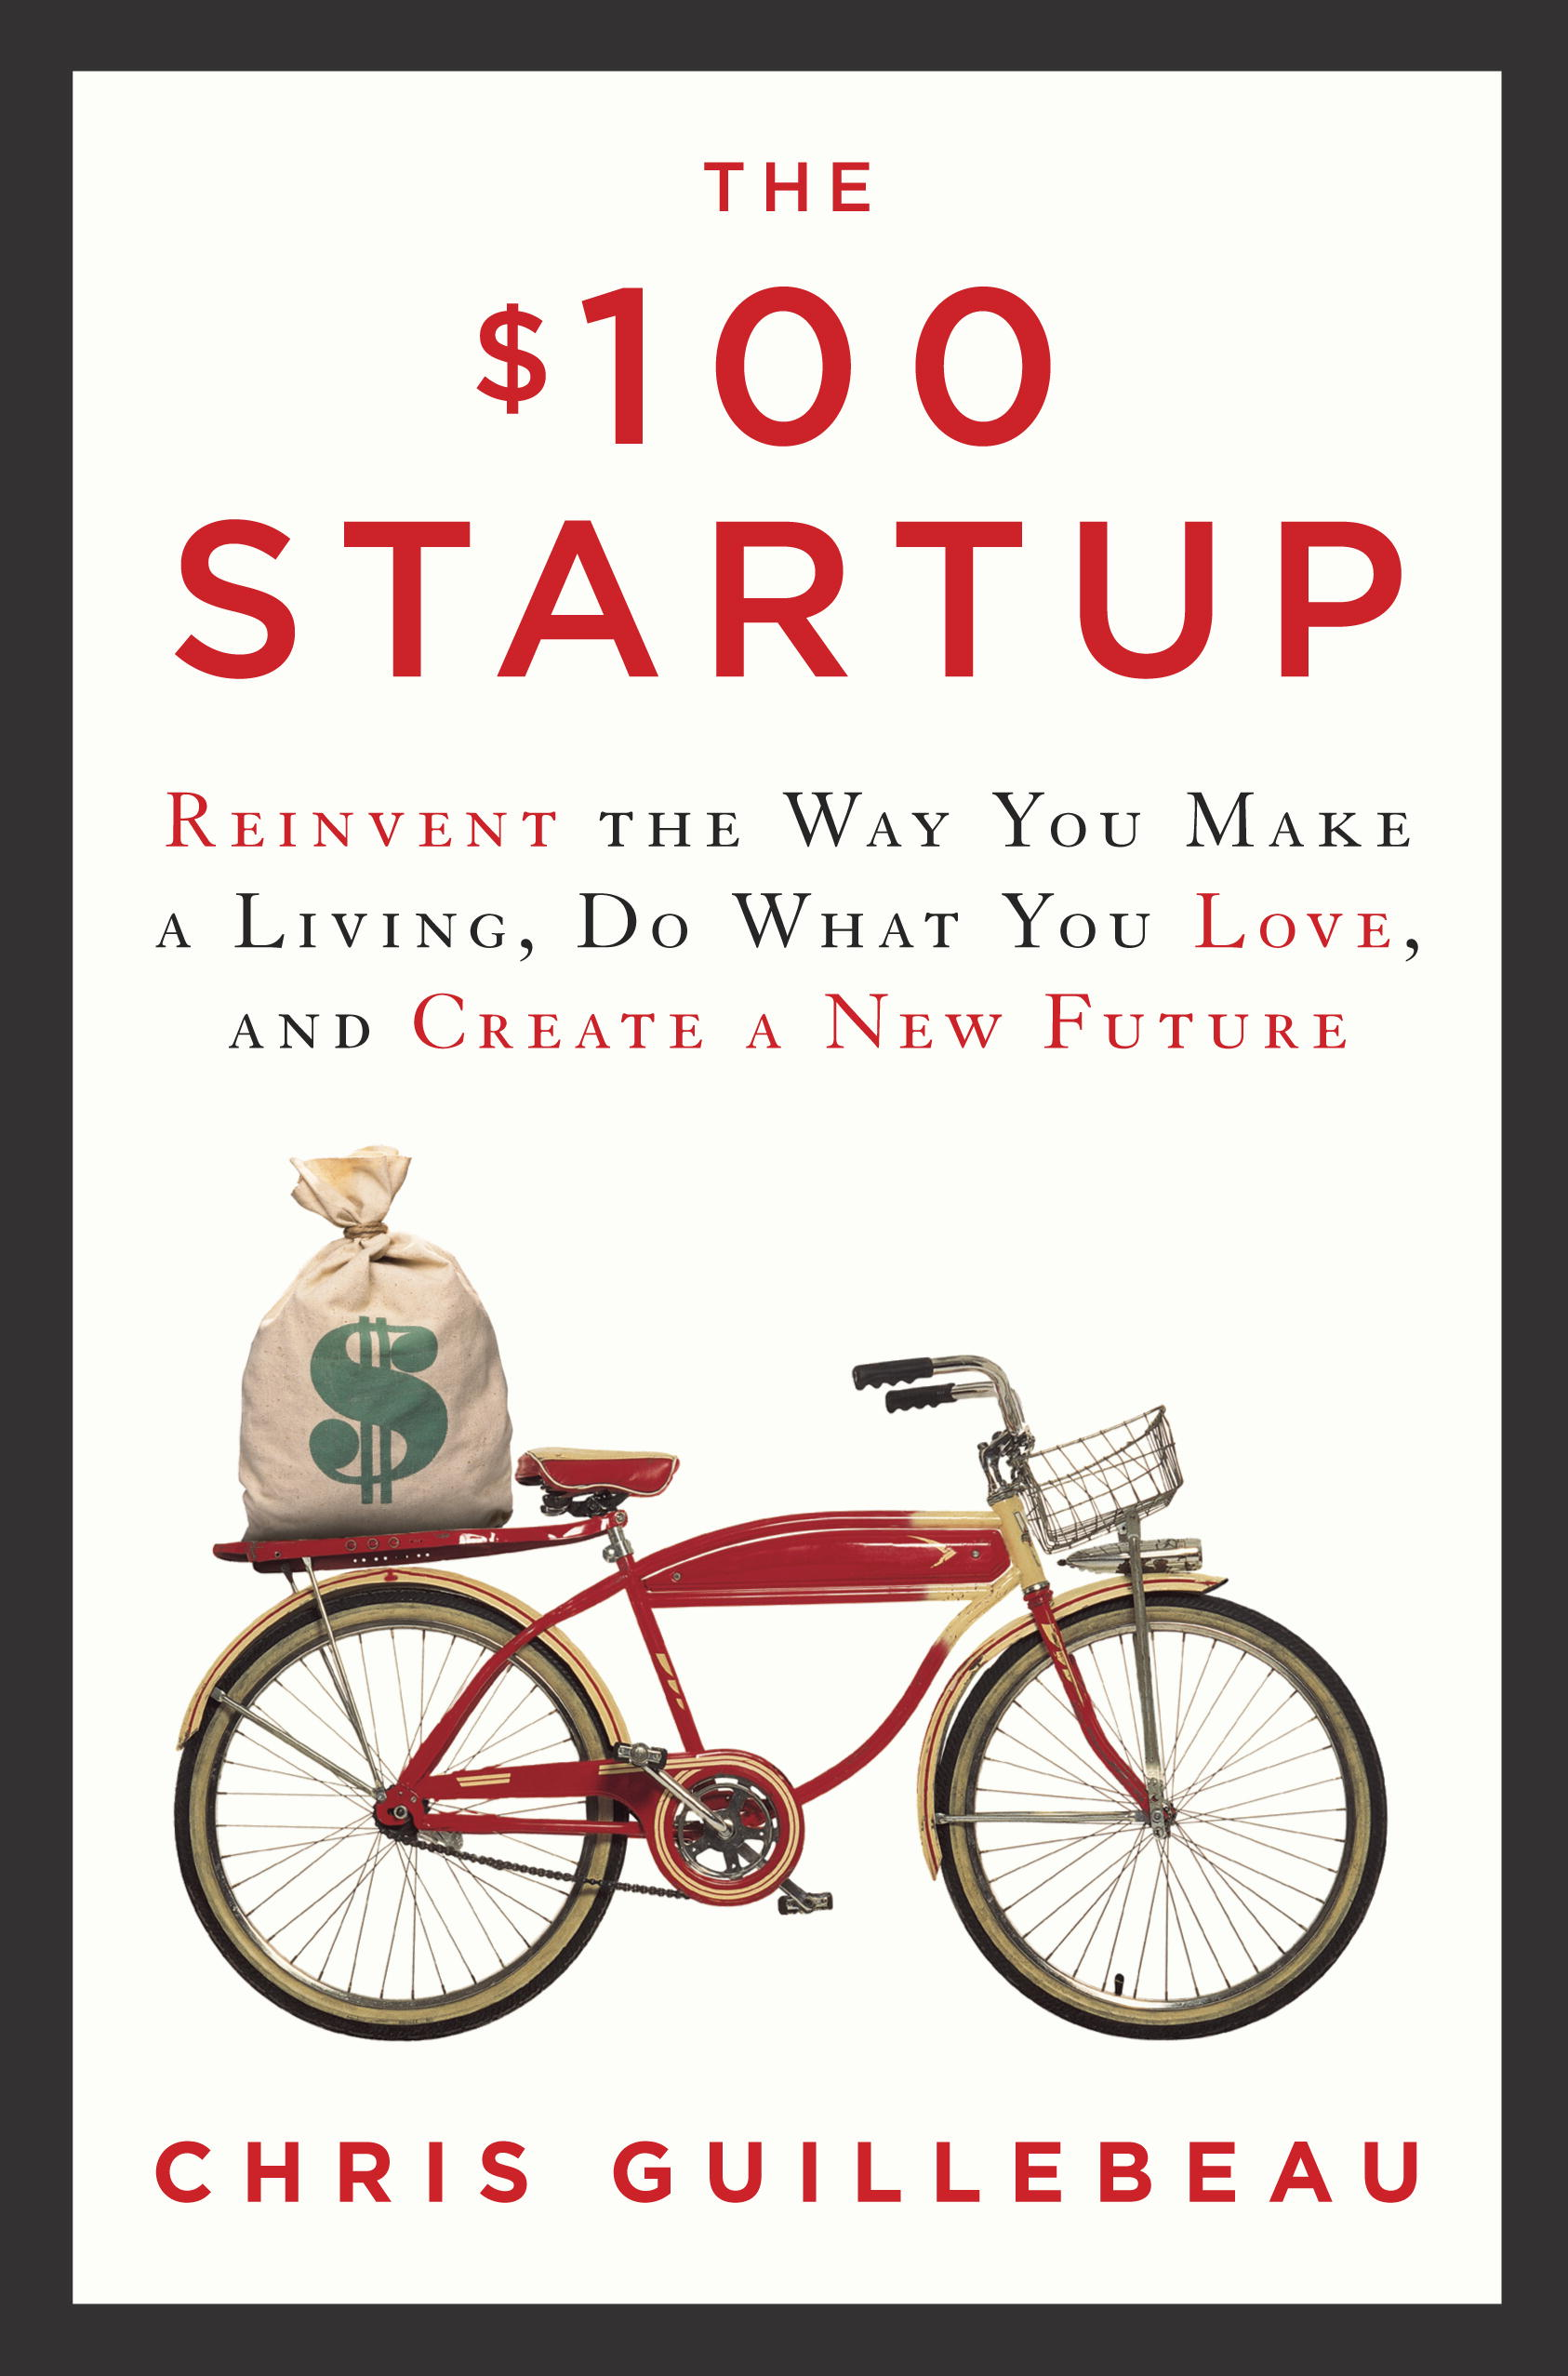 chris-guillebeau-the-100-startup-reinvent-the-way-you-make-a-living-do-what-you-love-and-create-a-new-future-01.jpeg